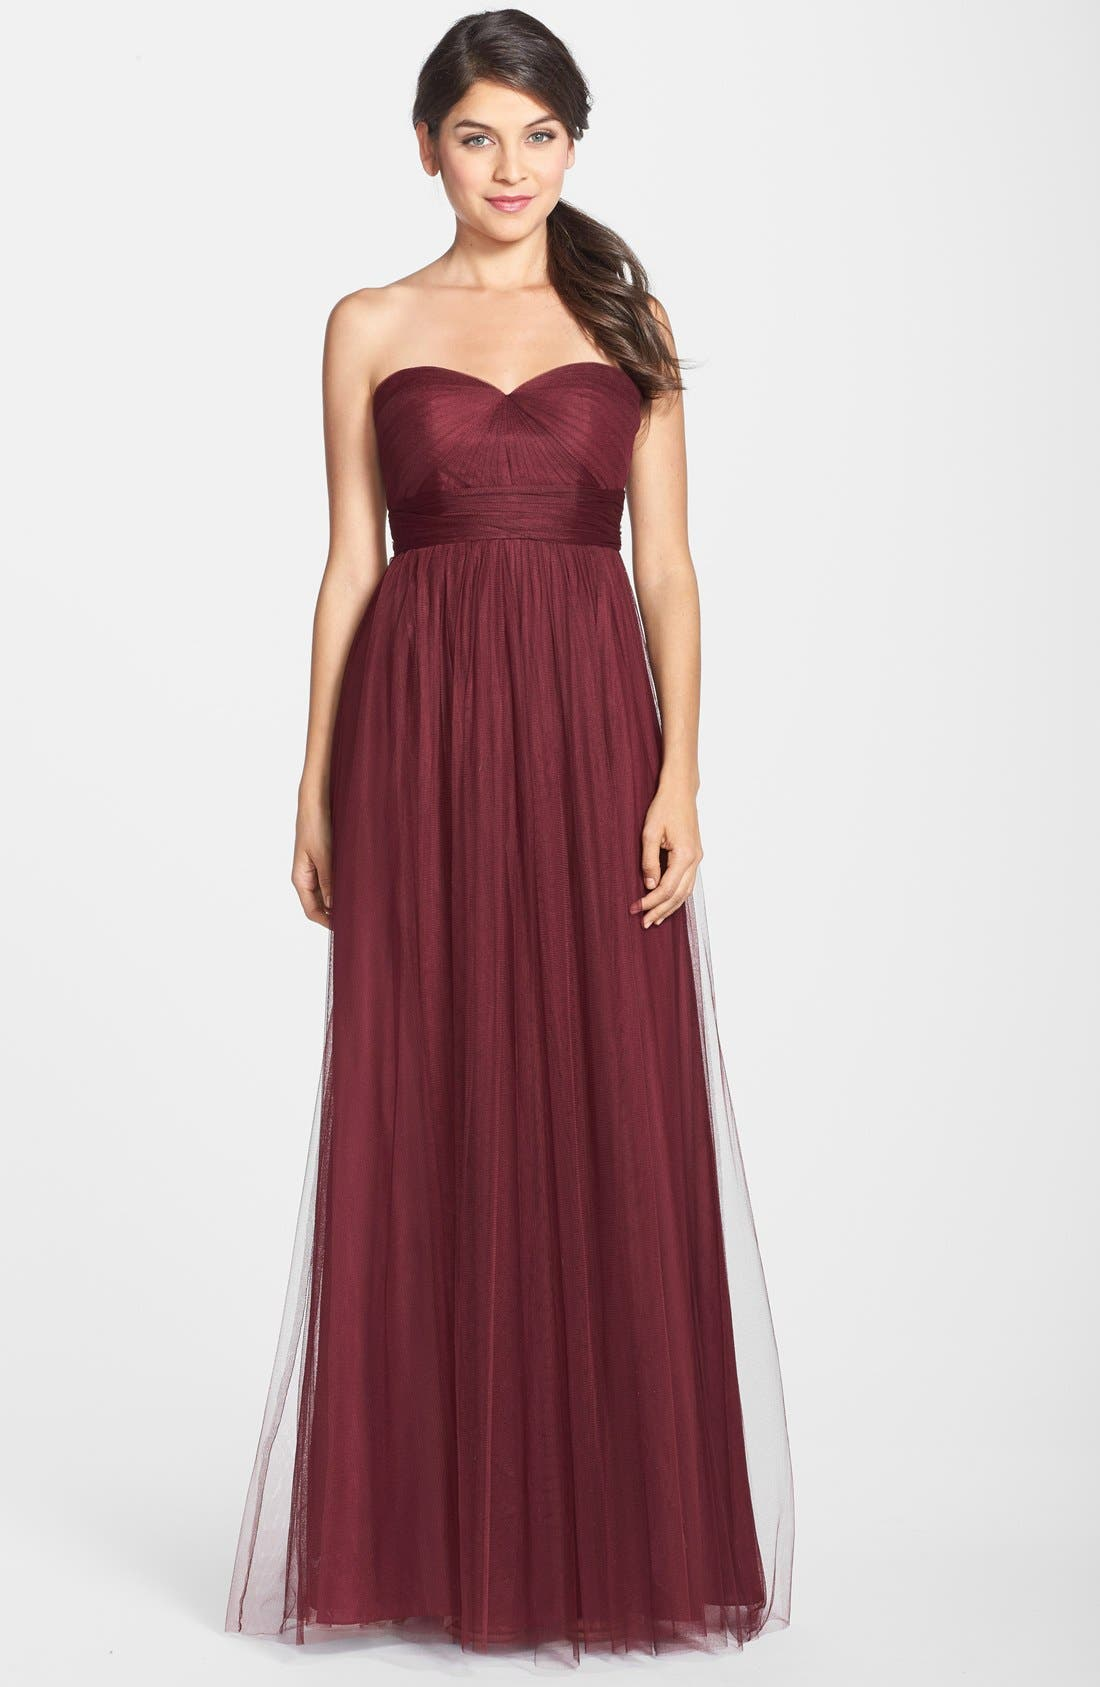 Annabelle Convertible Tulle Column Dress,                             Main thumbnail 2, color,